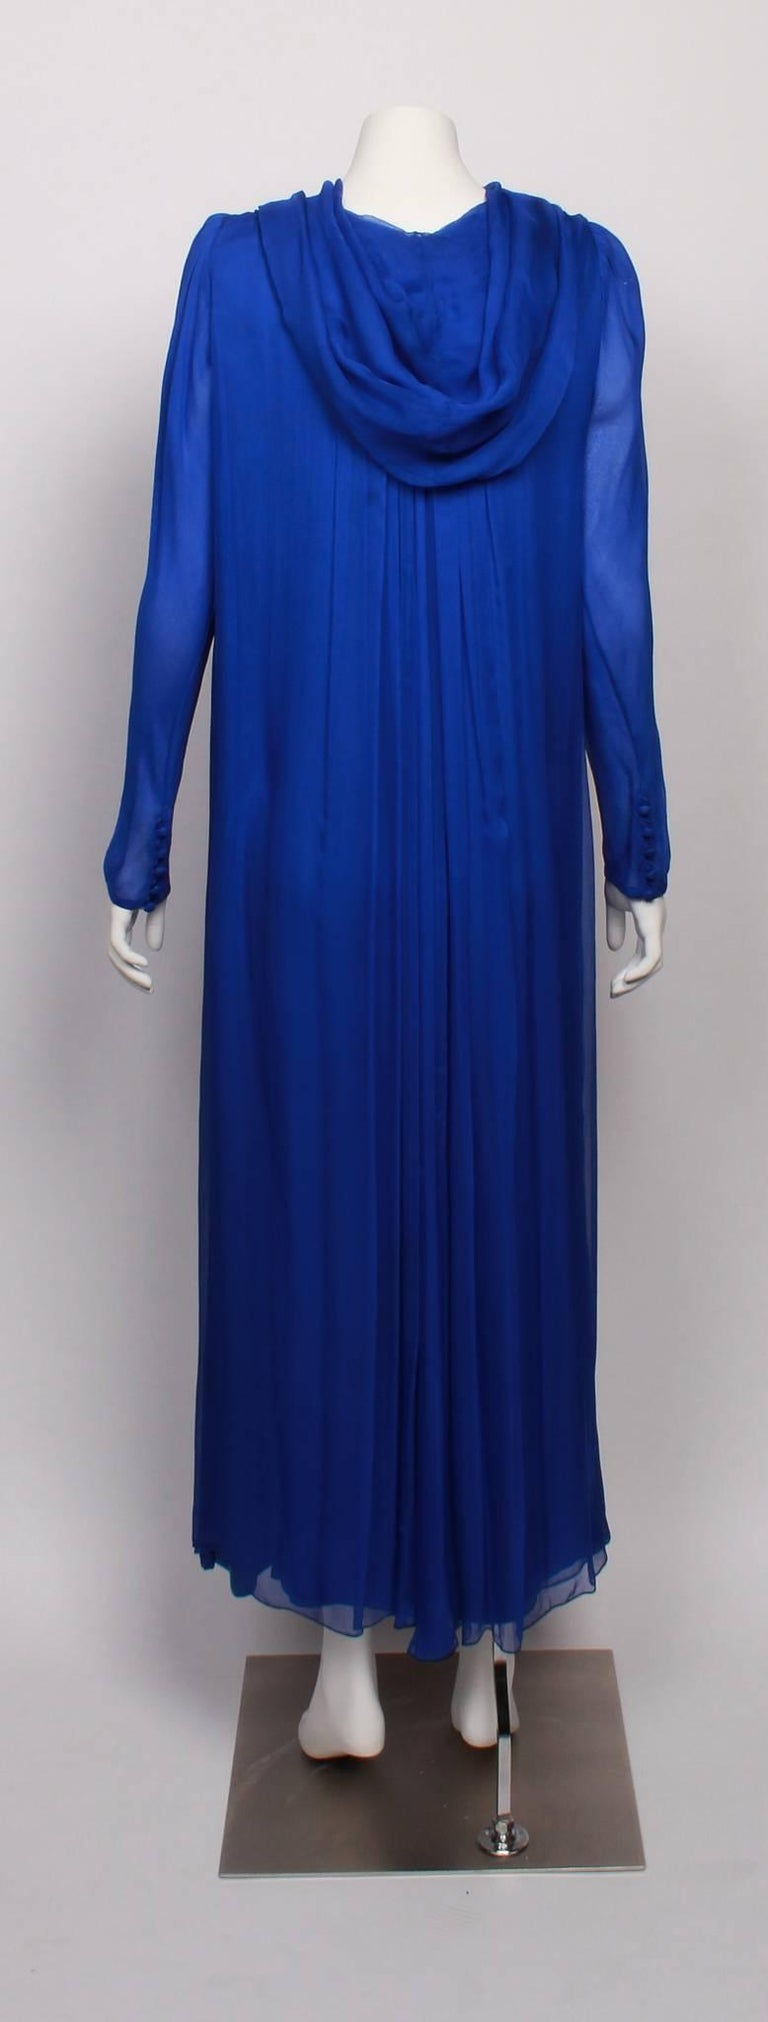 Amazing and rare YVES SAINT LAURENT 1970s Couture  Silk Chiffon Hooded Evening Gown.  Features YSL unique couture numbering on label.   Made from textured silk chiffon and fully lined in the famous and classic YSL statement colour  - majorelle